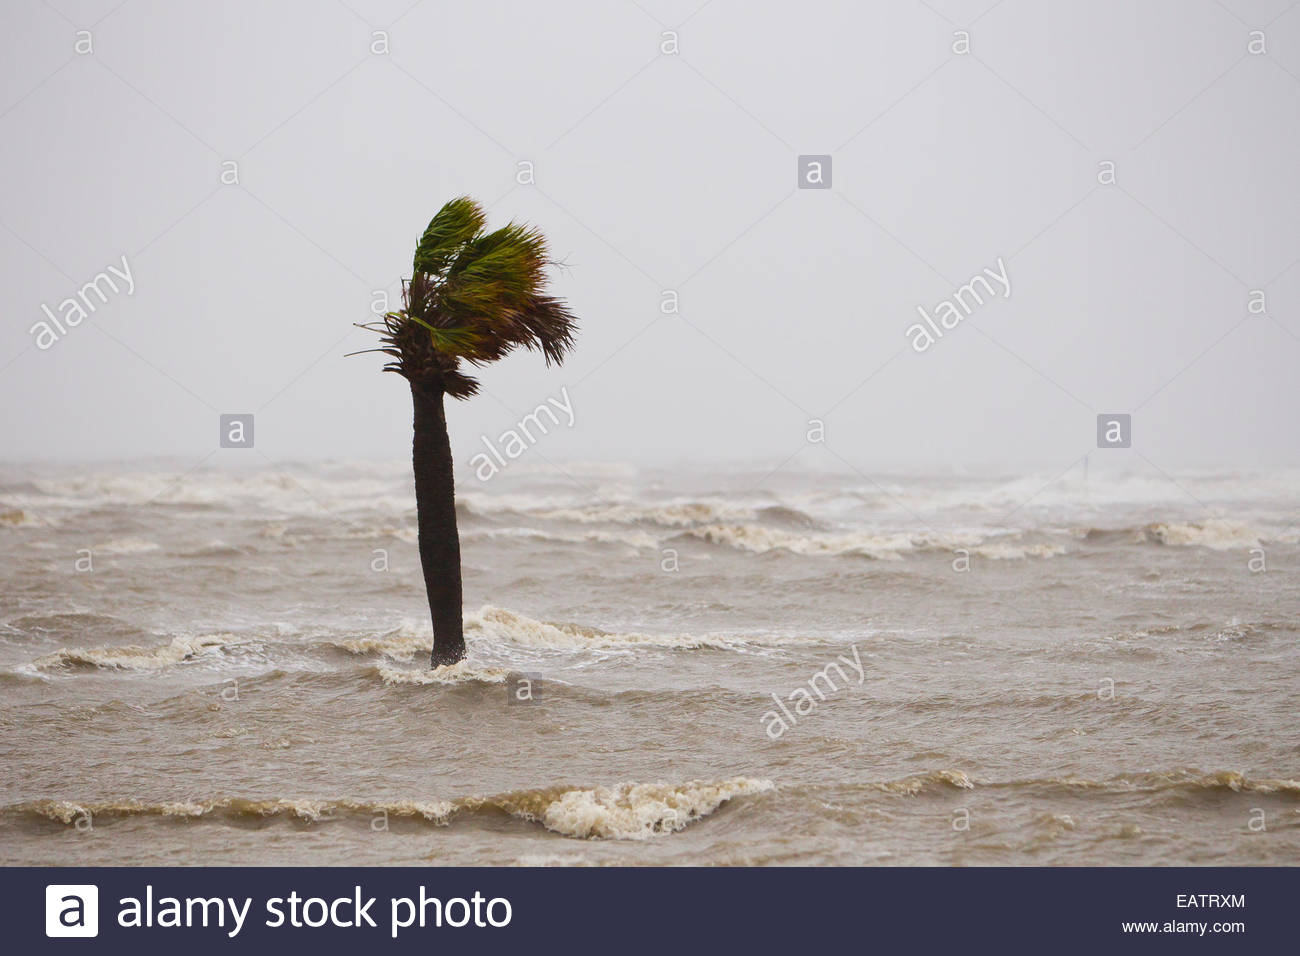 A palm tree in Hurricane Isaac's storm surge along Highway 90. - Stock Image